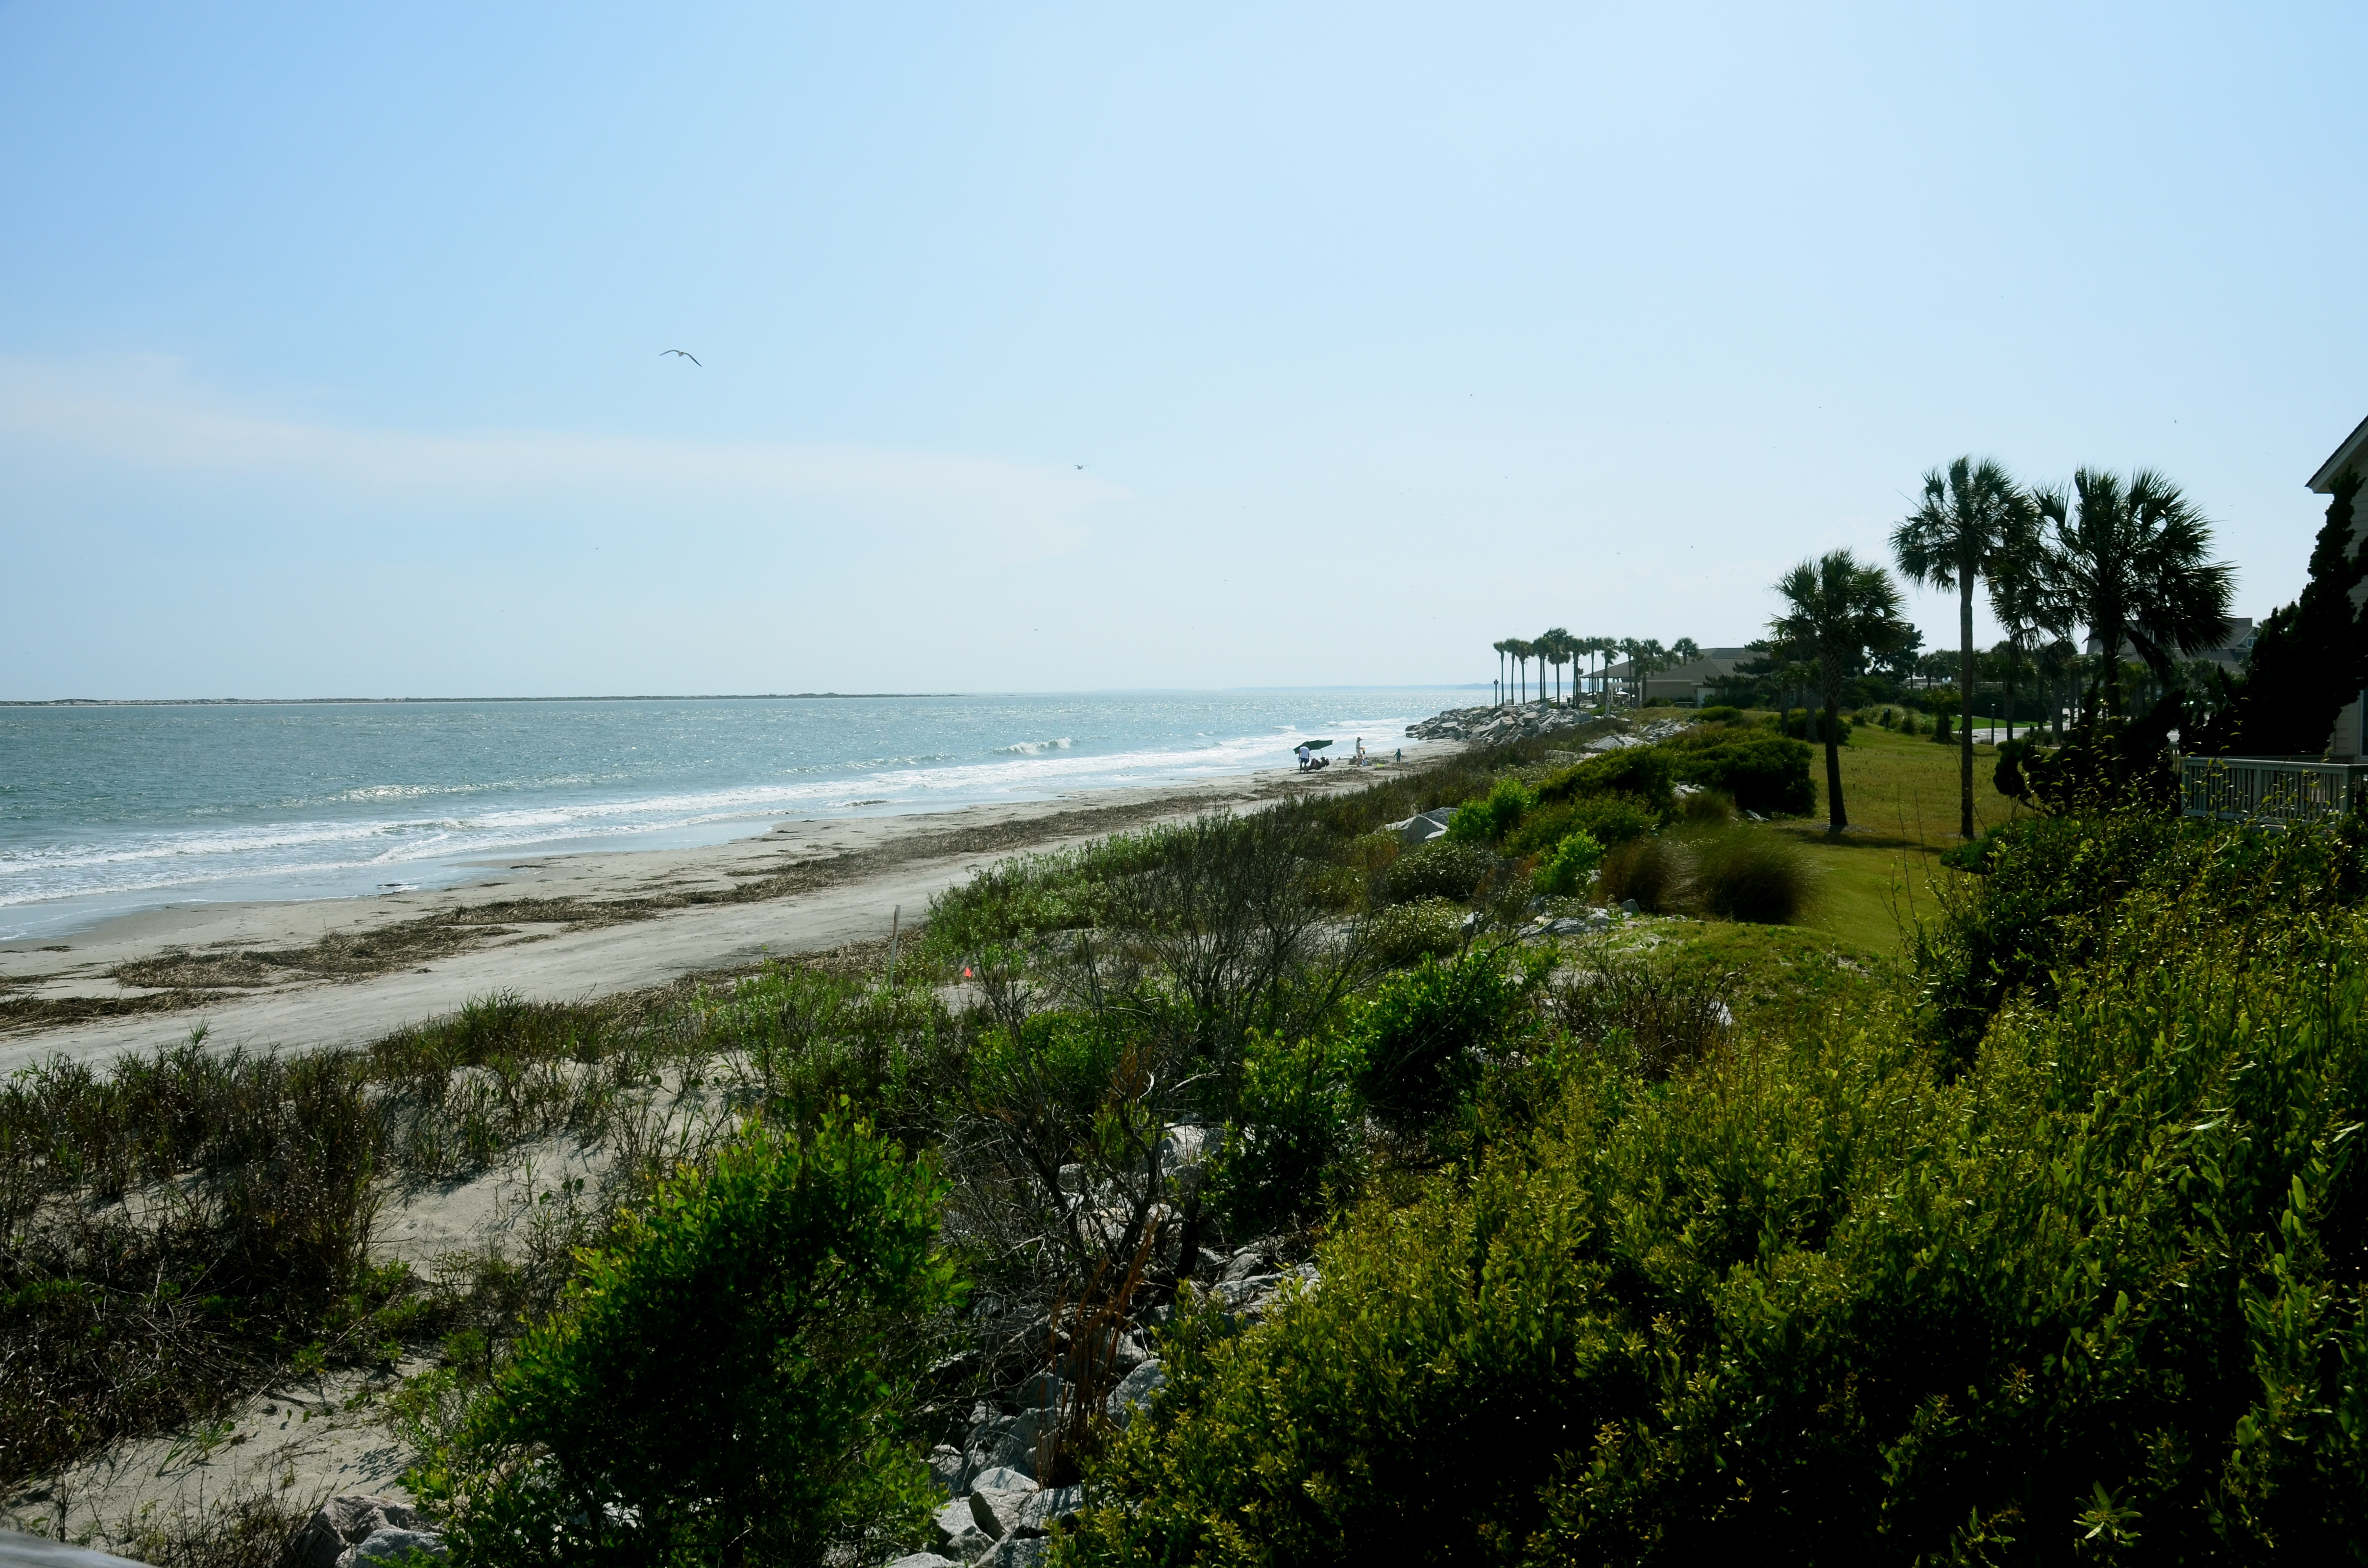 The clubhouse and beach pools are just a few yards from this vacation getaway.